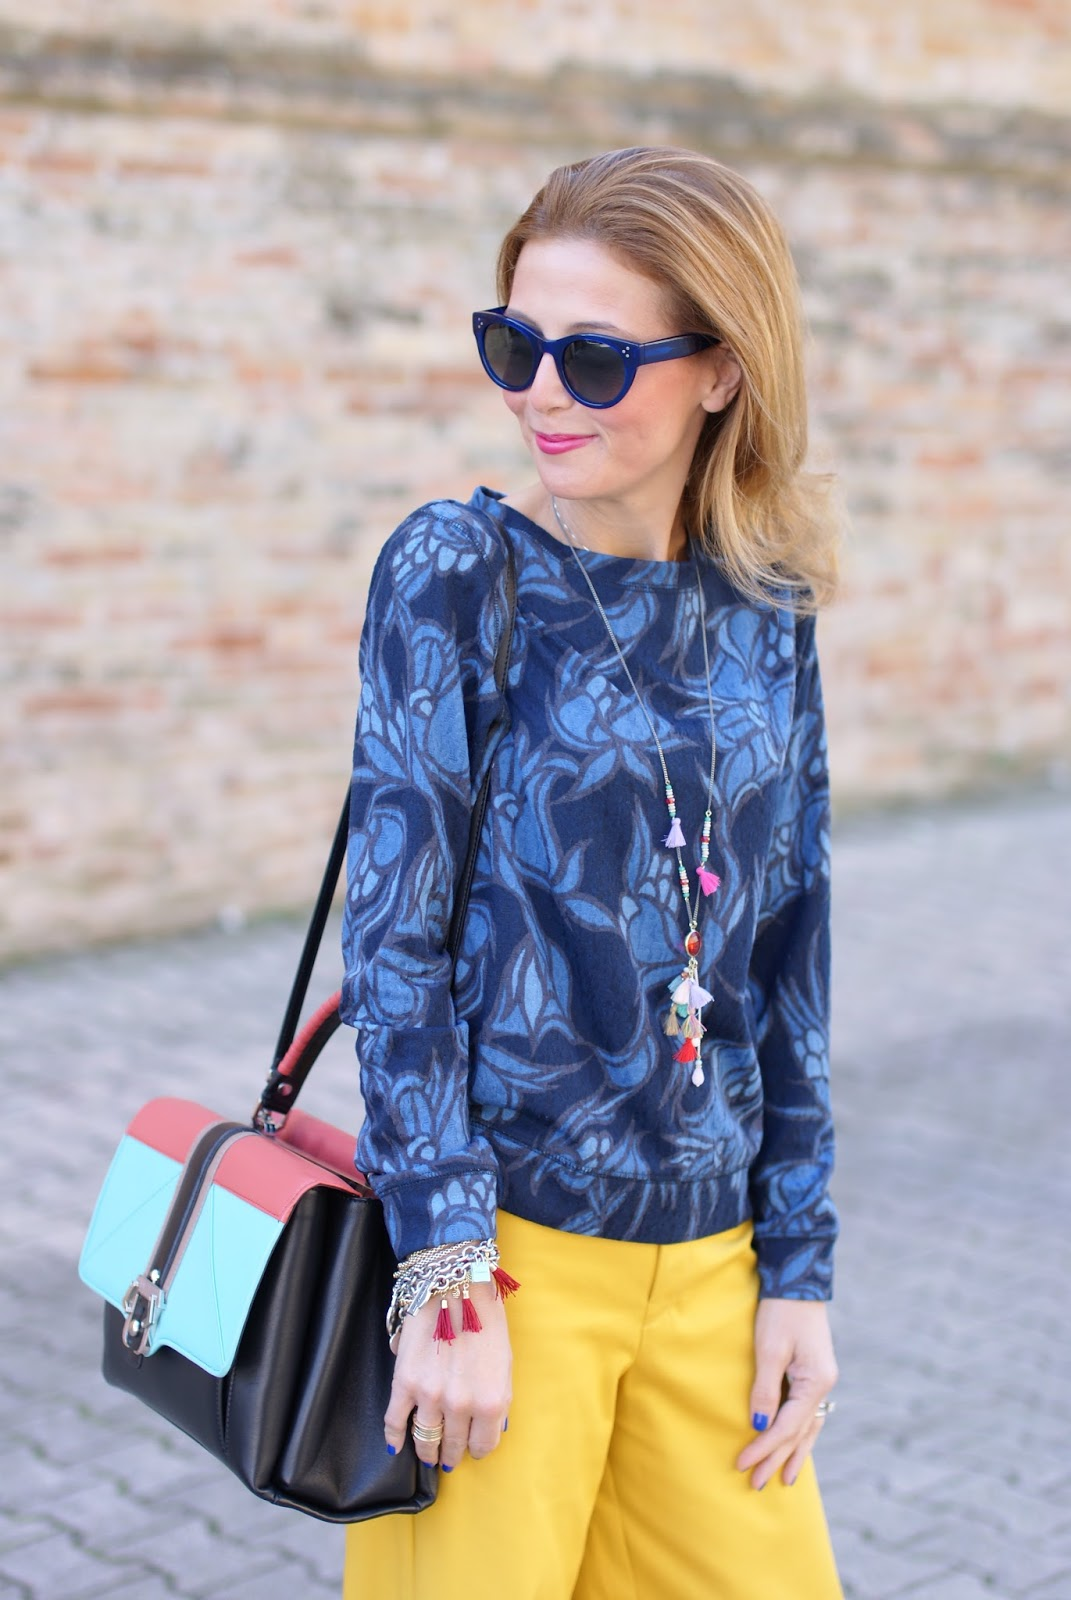 Paula Cademartori Faye handbag, yellow pants and Hype Glass on Fashion and Cookies fashion blog